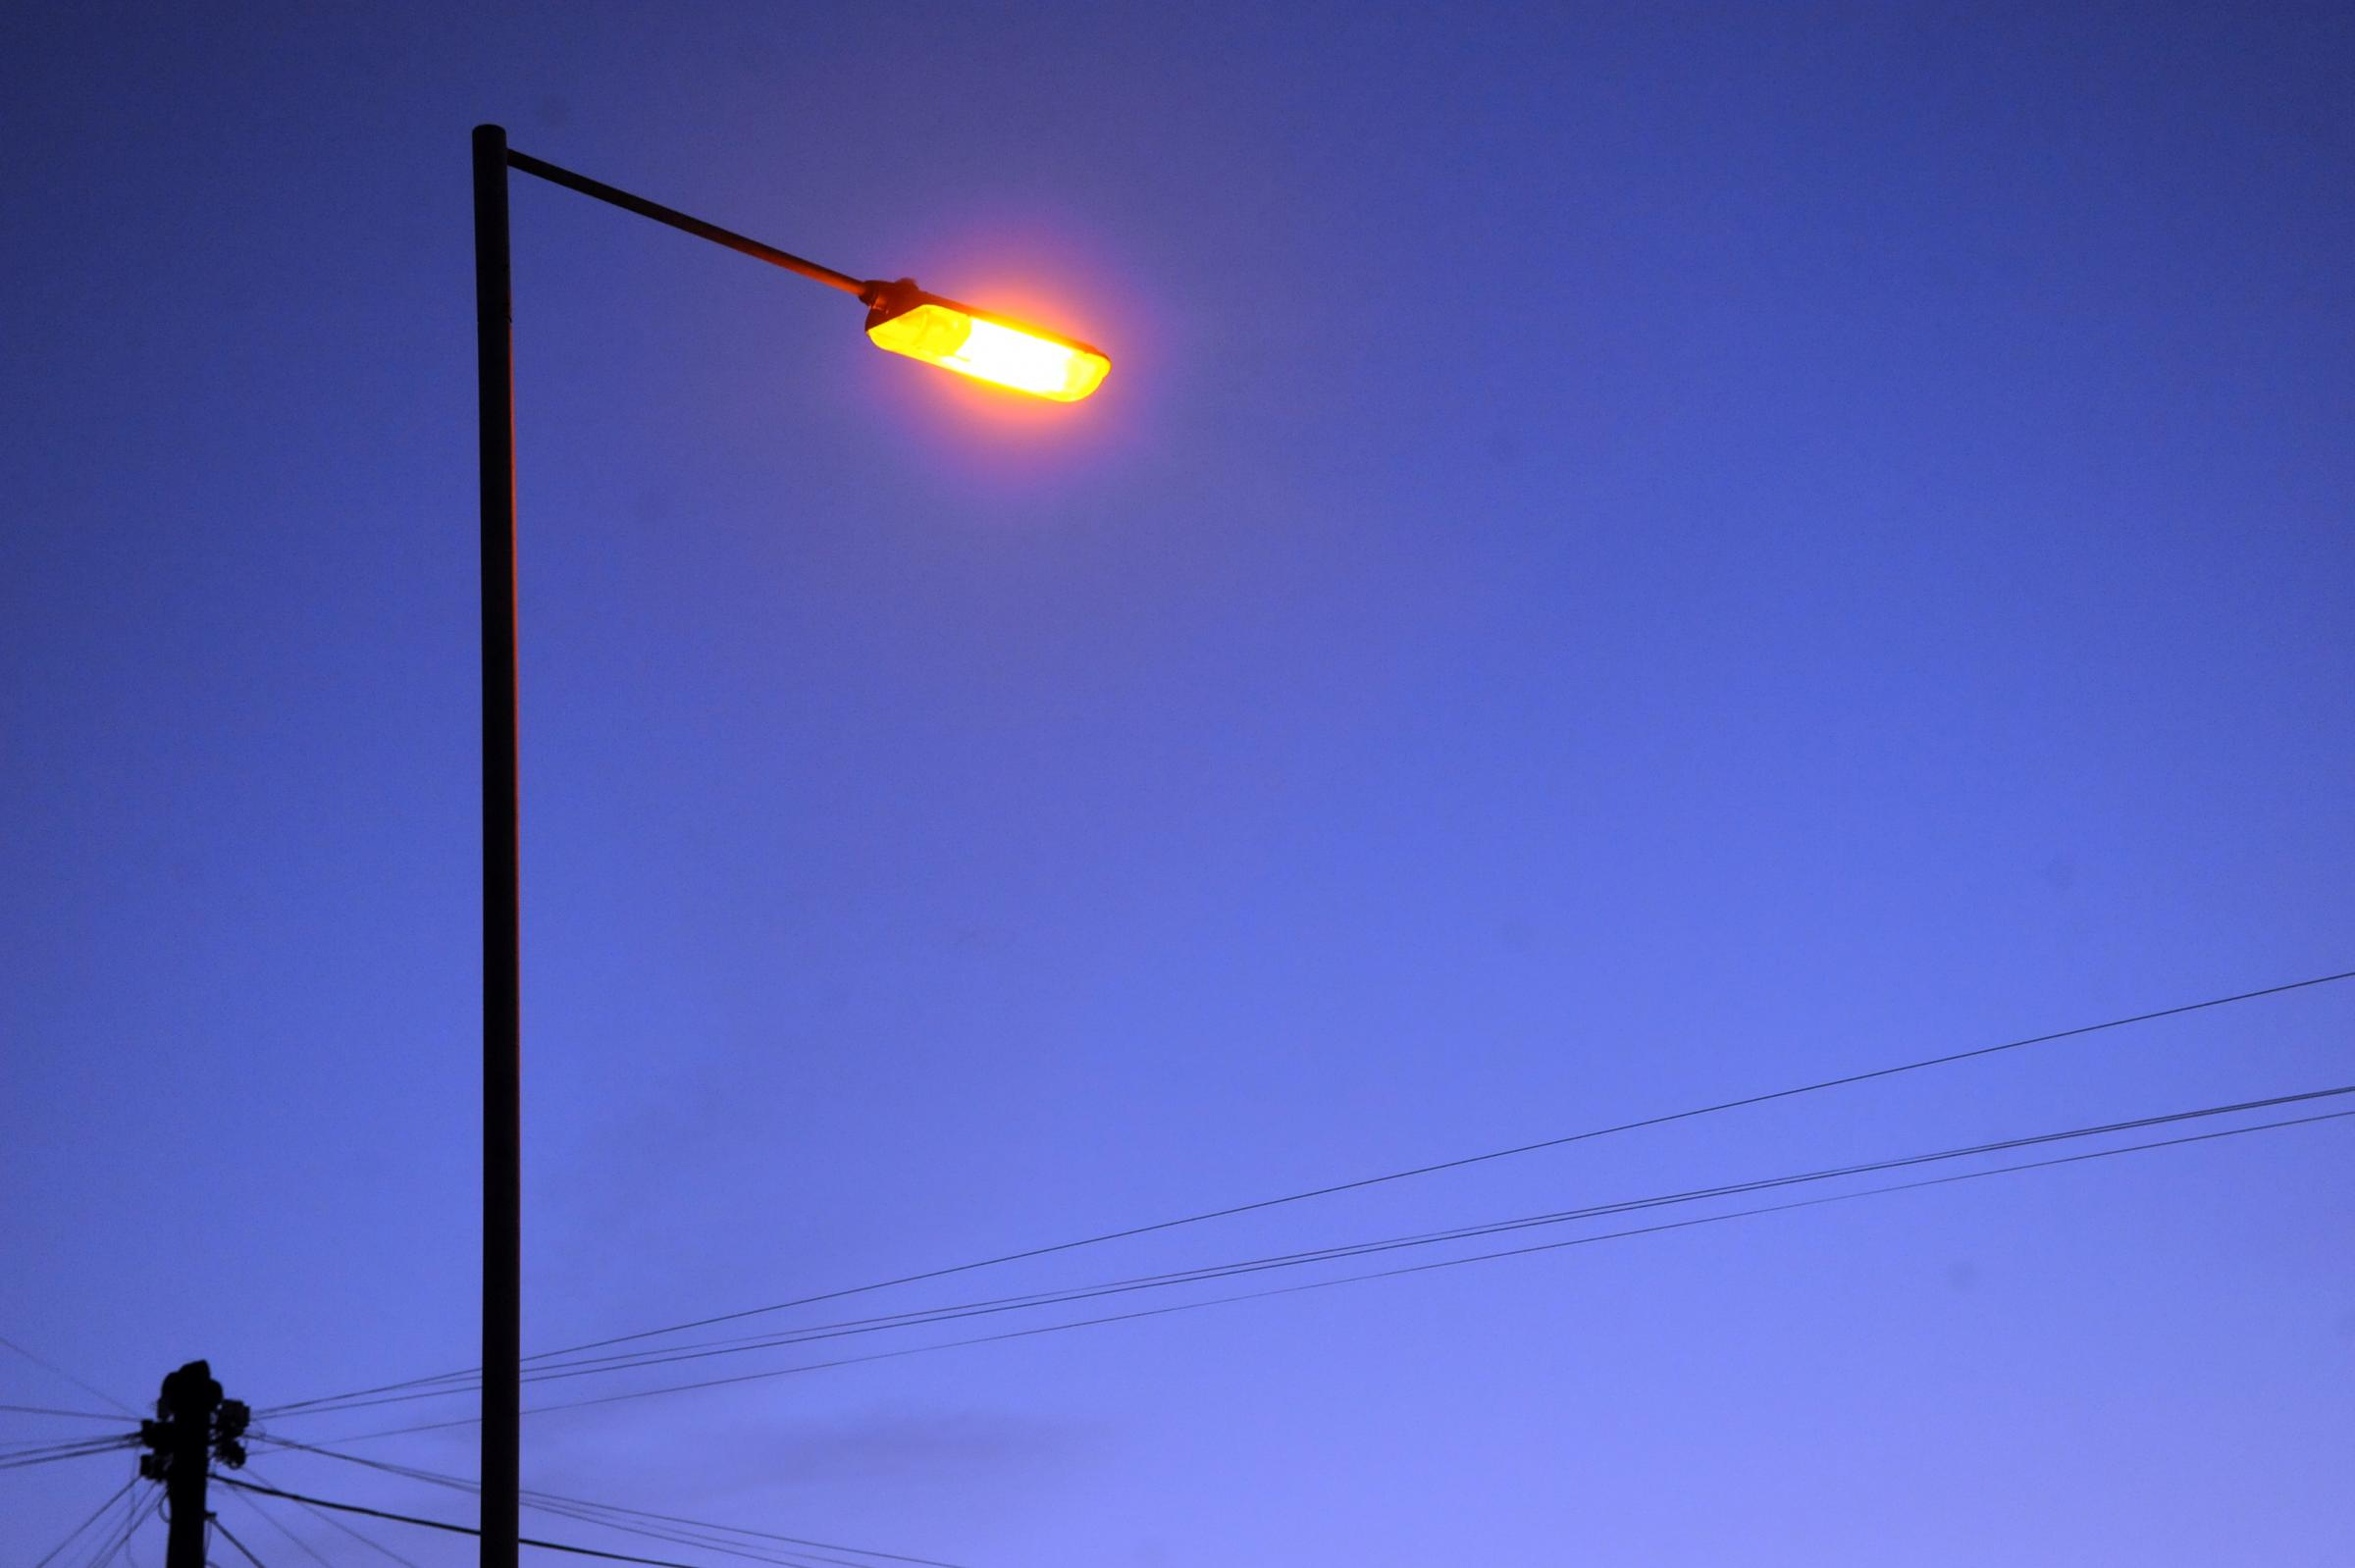 Concerns raised over streetlight switch-off t